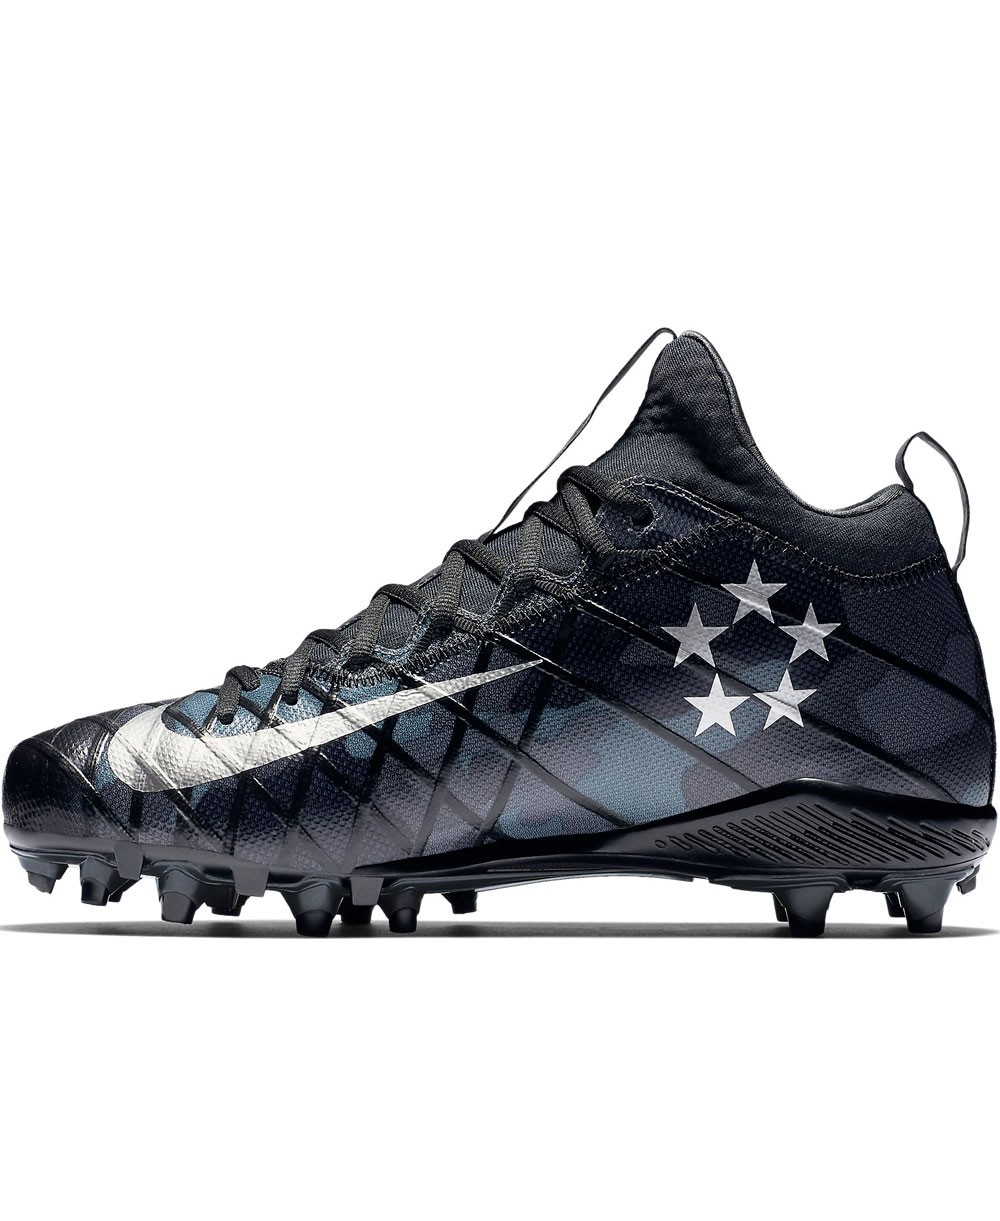 20e4997f4bd0 Nike - American Football Cleats for men, model Alpha Field General Elite  Camo, colour Black/Anthracite/Dark Grey/Metallic Silver